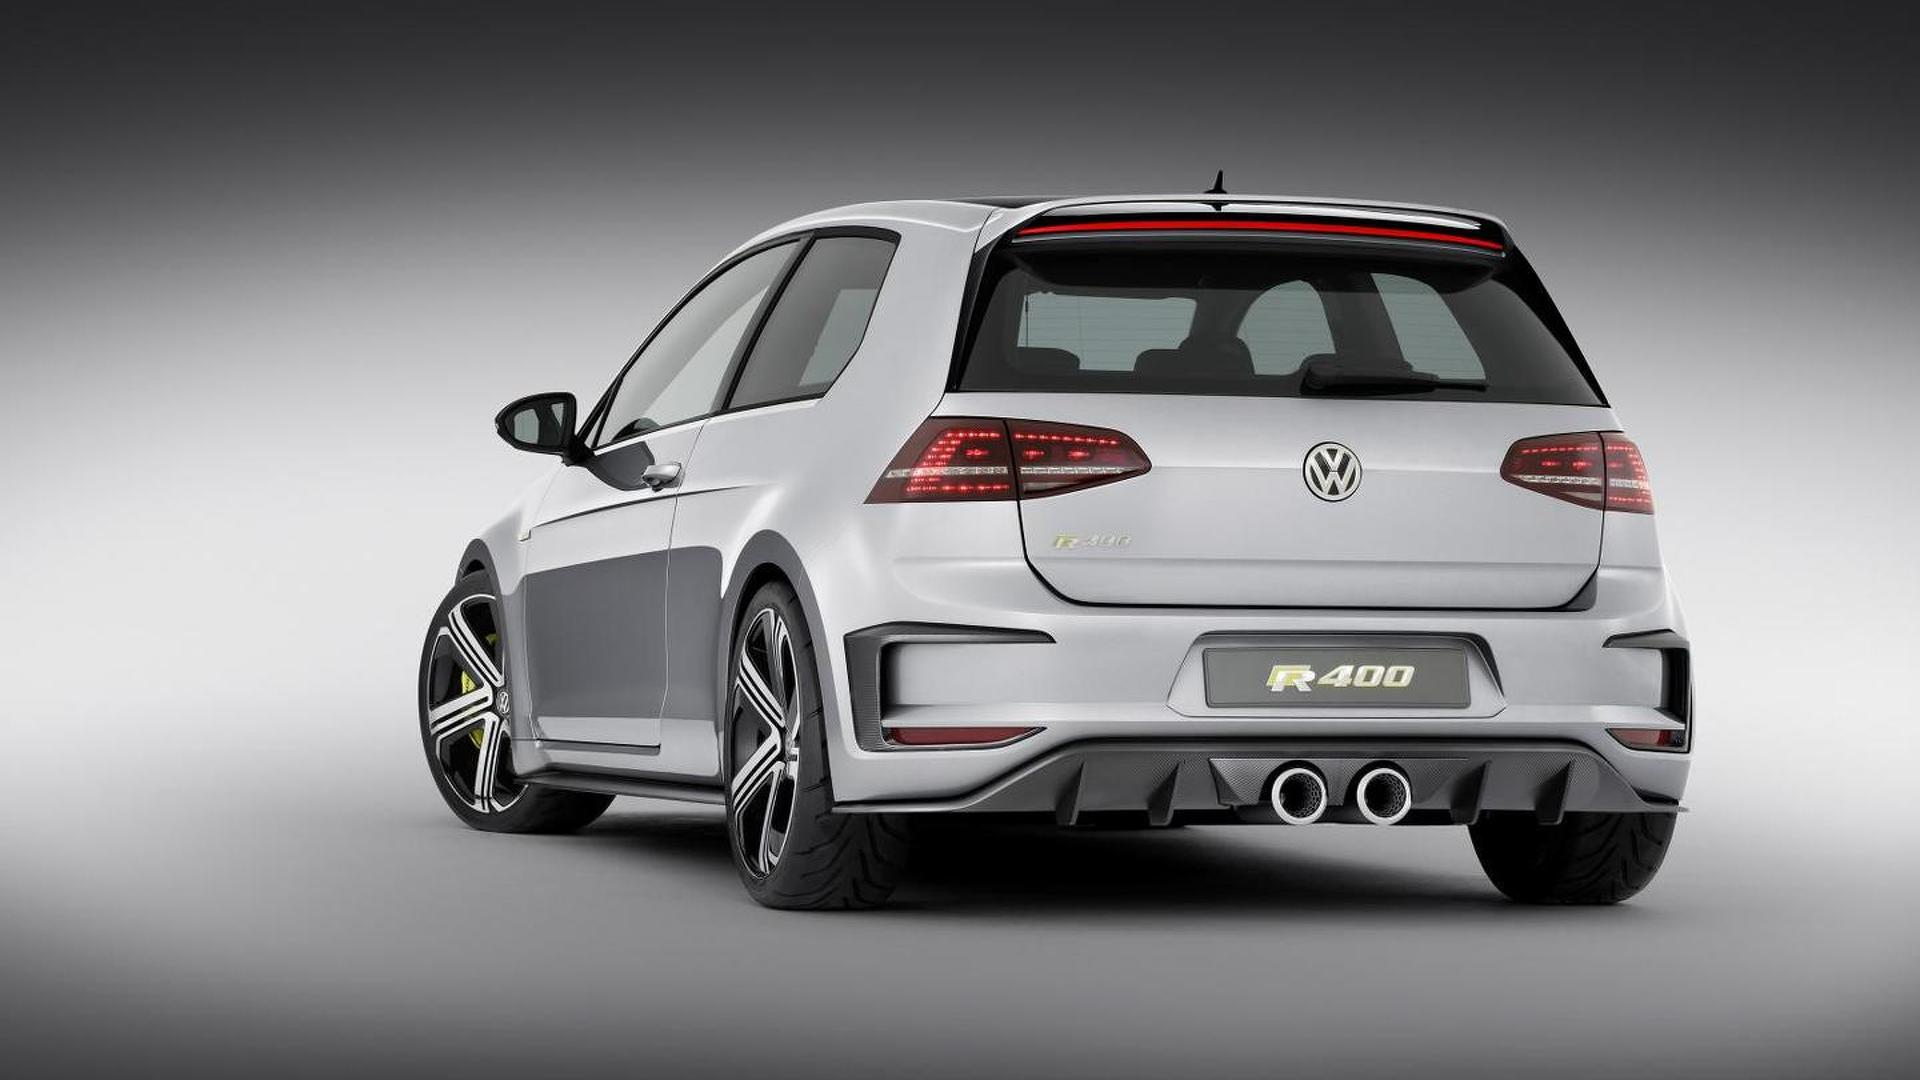 Vw Golf R400 >> Vw Golf R Plus Allegedly In The Works With Nearly 400 Hp